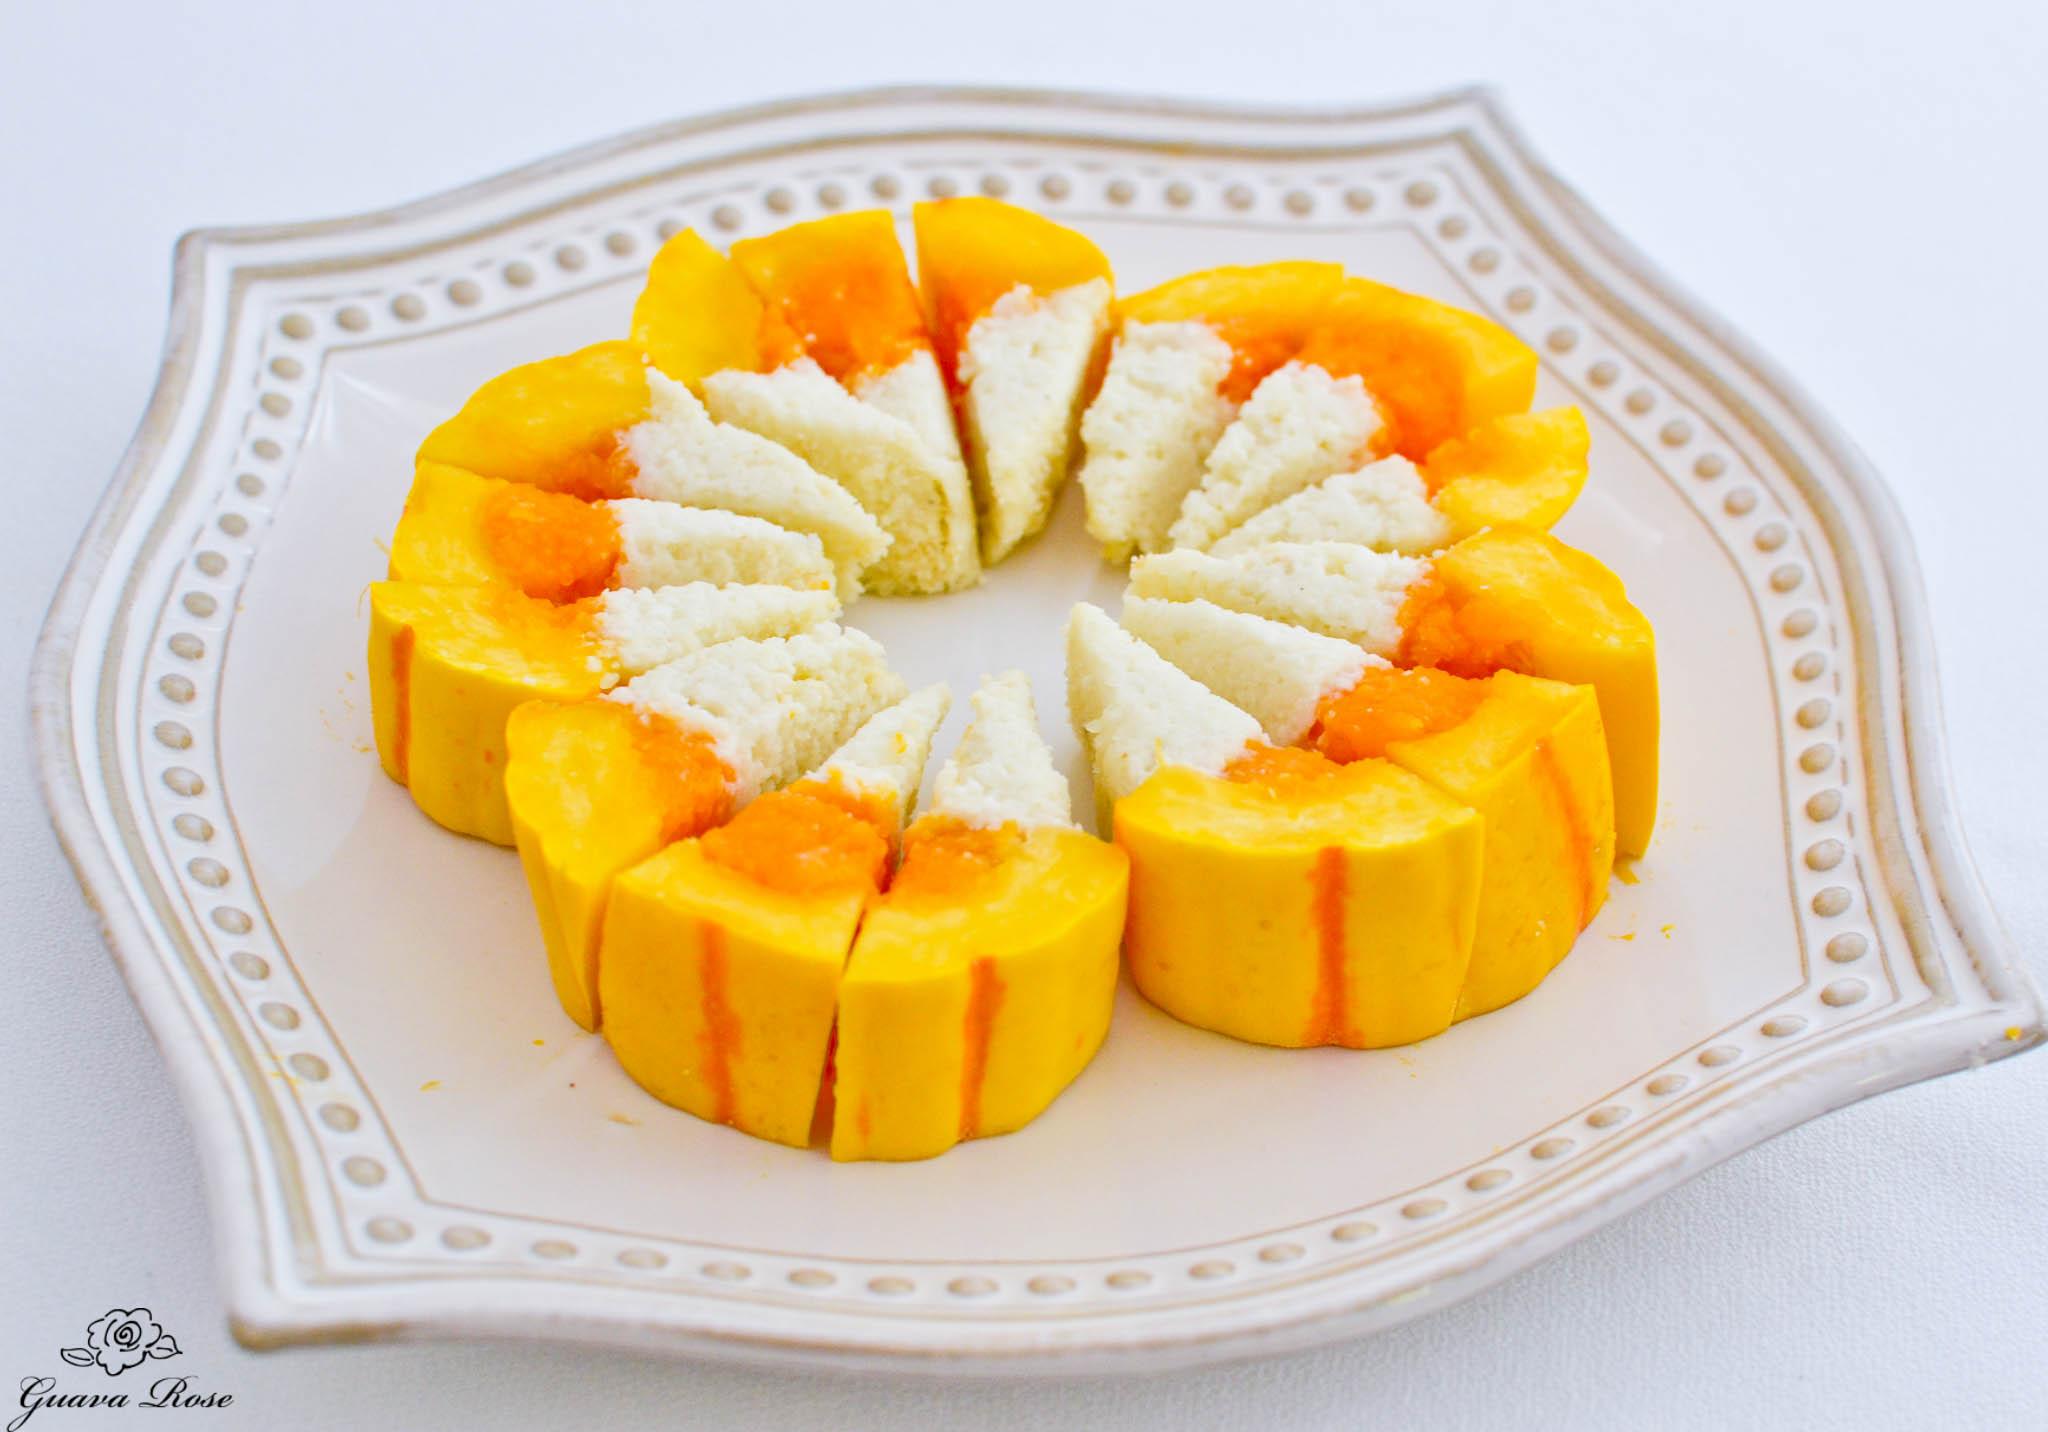 Candy Corned Squash (Delicata, Butternut, and Cauliflower) slices cut into pieces